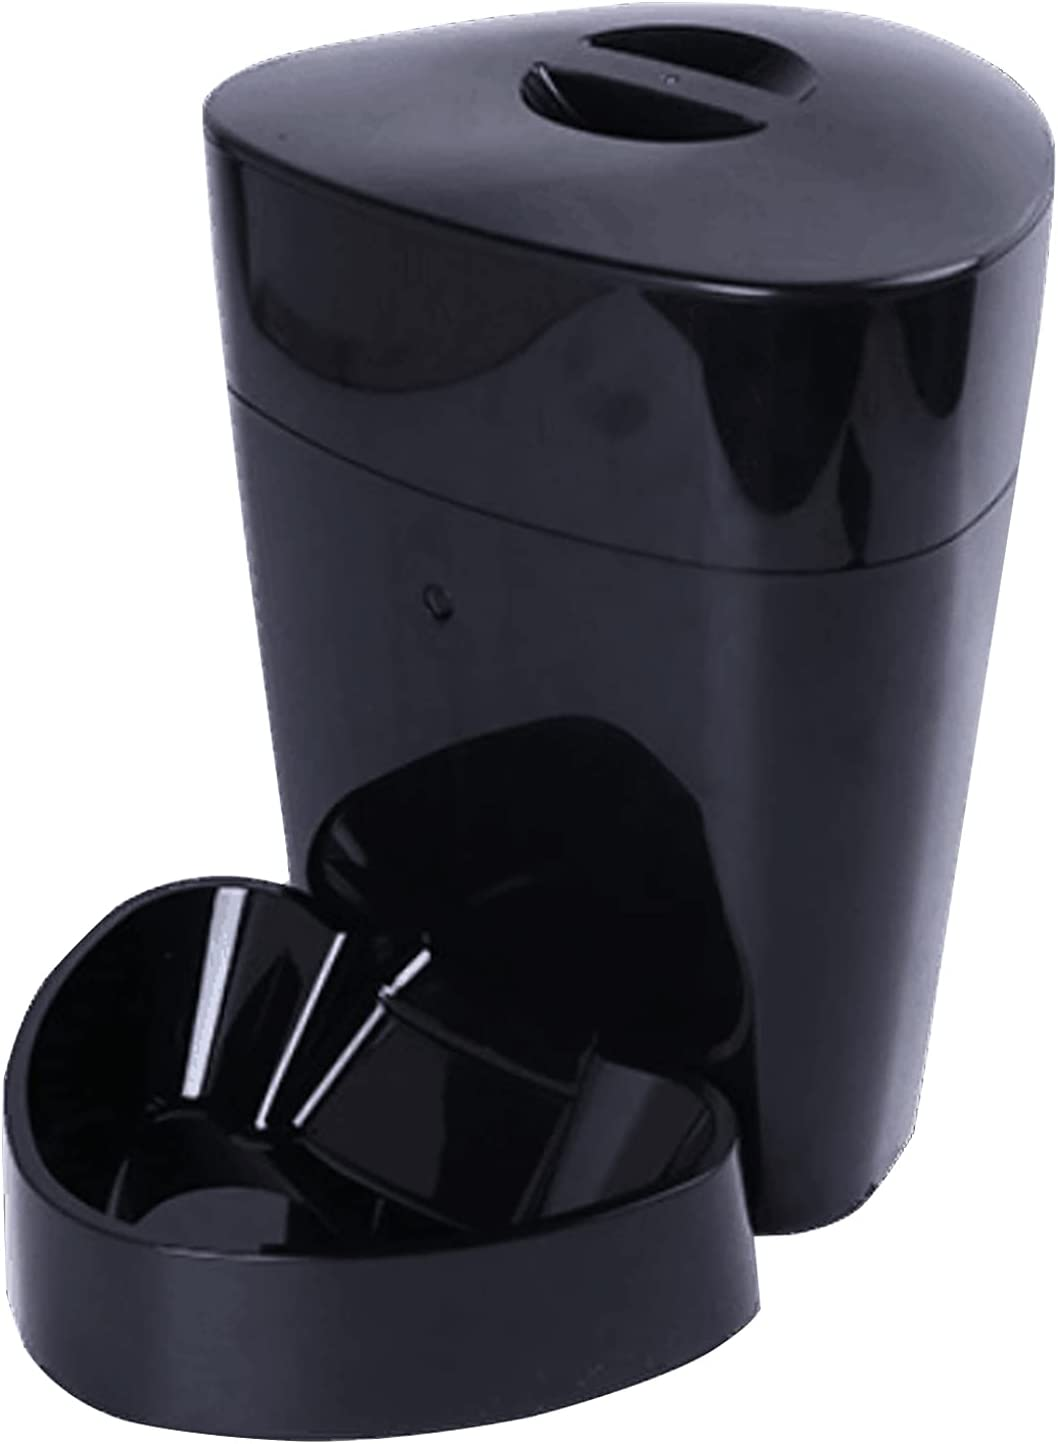 Automatic Pet Feeder Smart specialty A surprise price is realized shop Wi-Fi Dog Dispens Cat Food